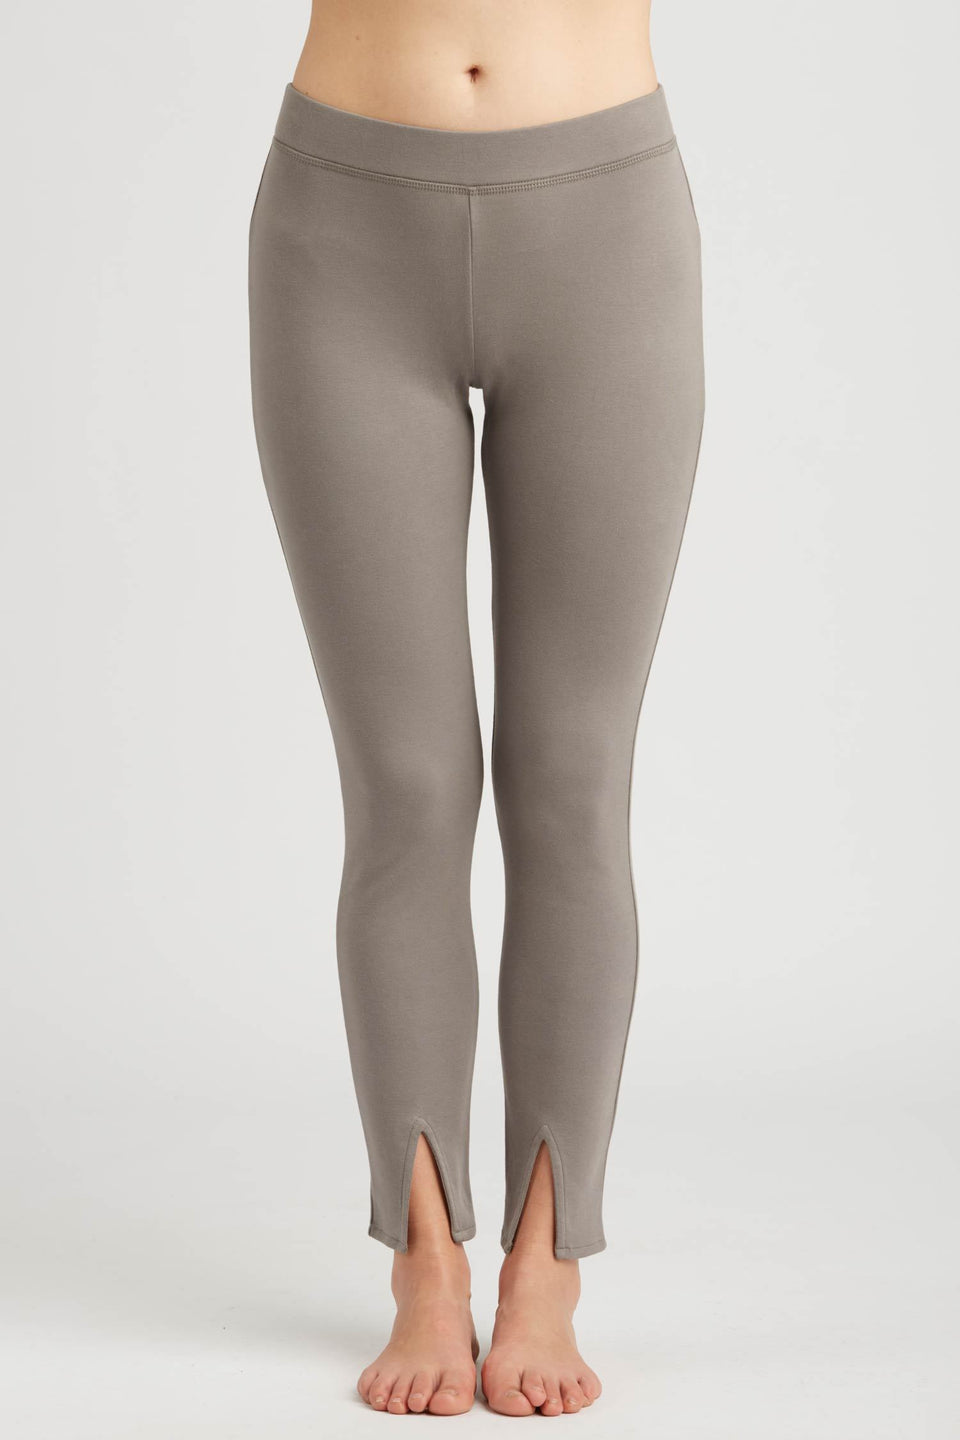 Ankle Slit Legging in Grey